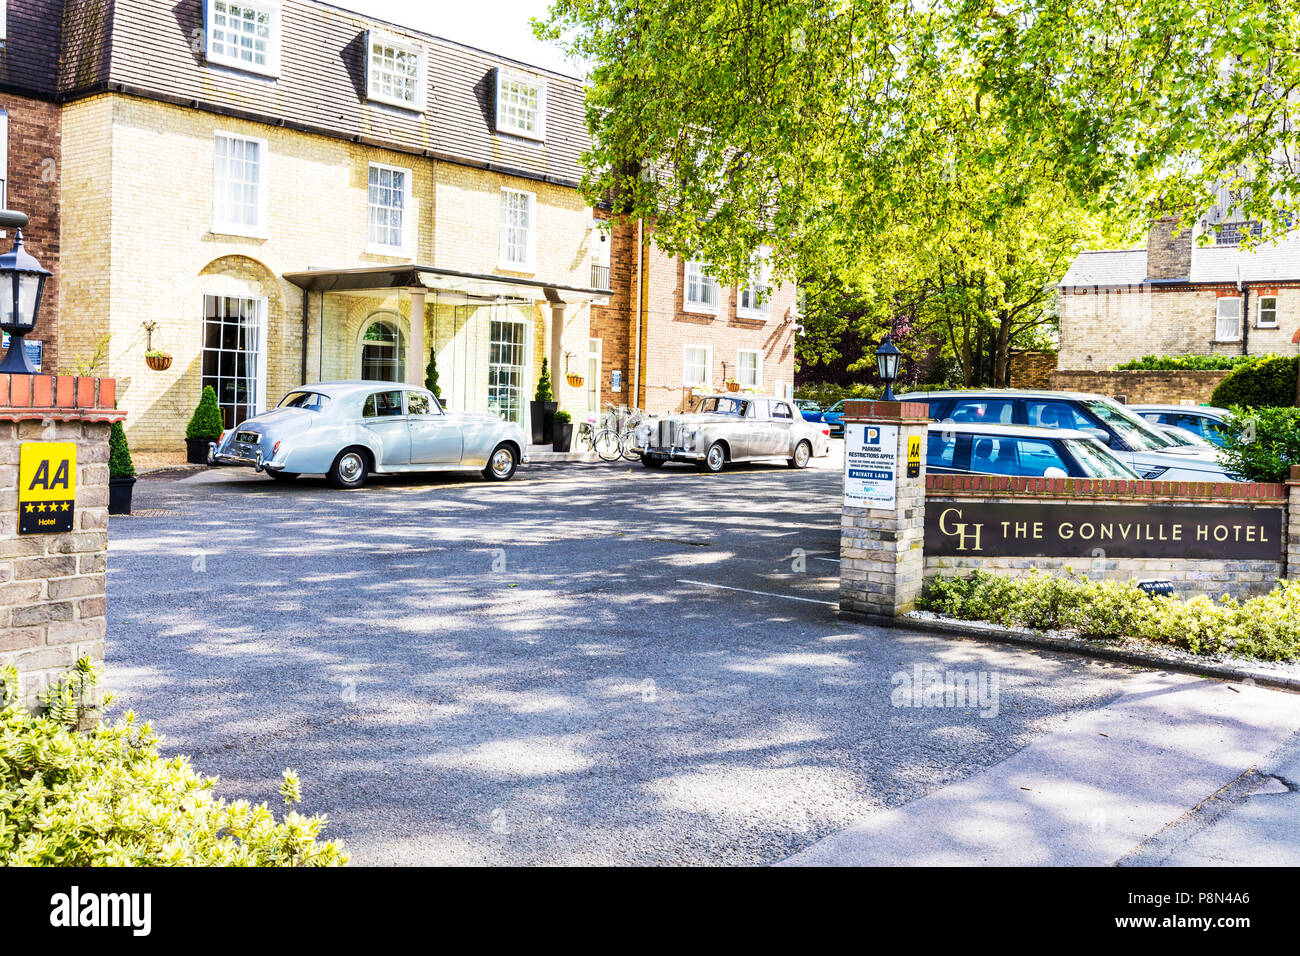 the gonville hotel cambridge, the gonville hotel, cambridge, boutique hotel, cambridge hotel, cambridge hotels, Cambridge UK, gonville hotel cambridge Stock Photo